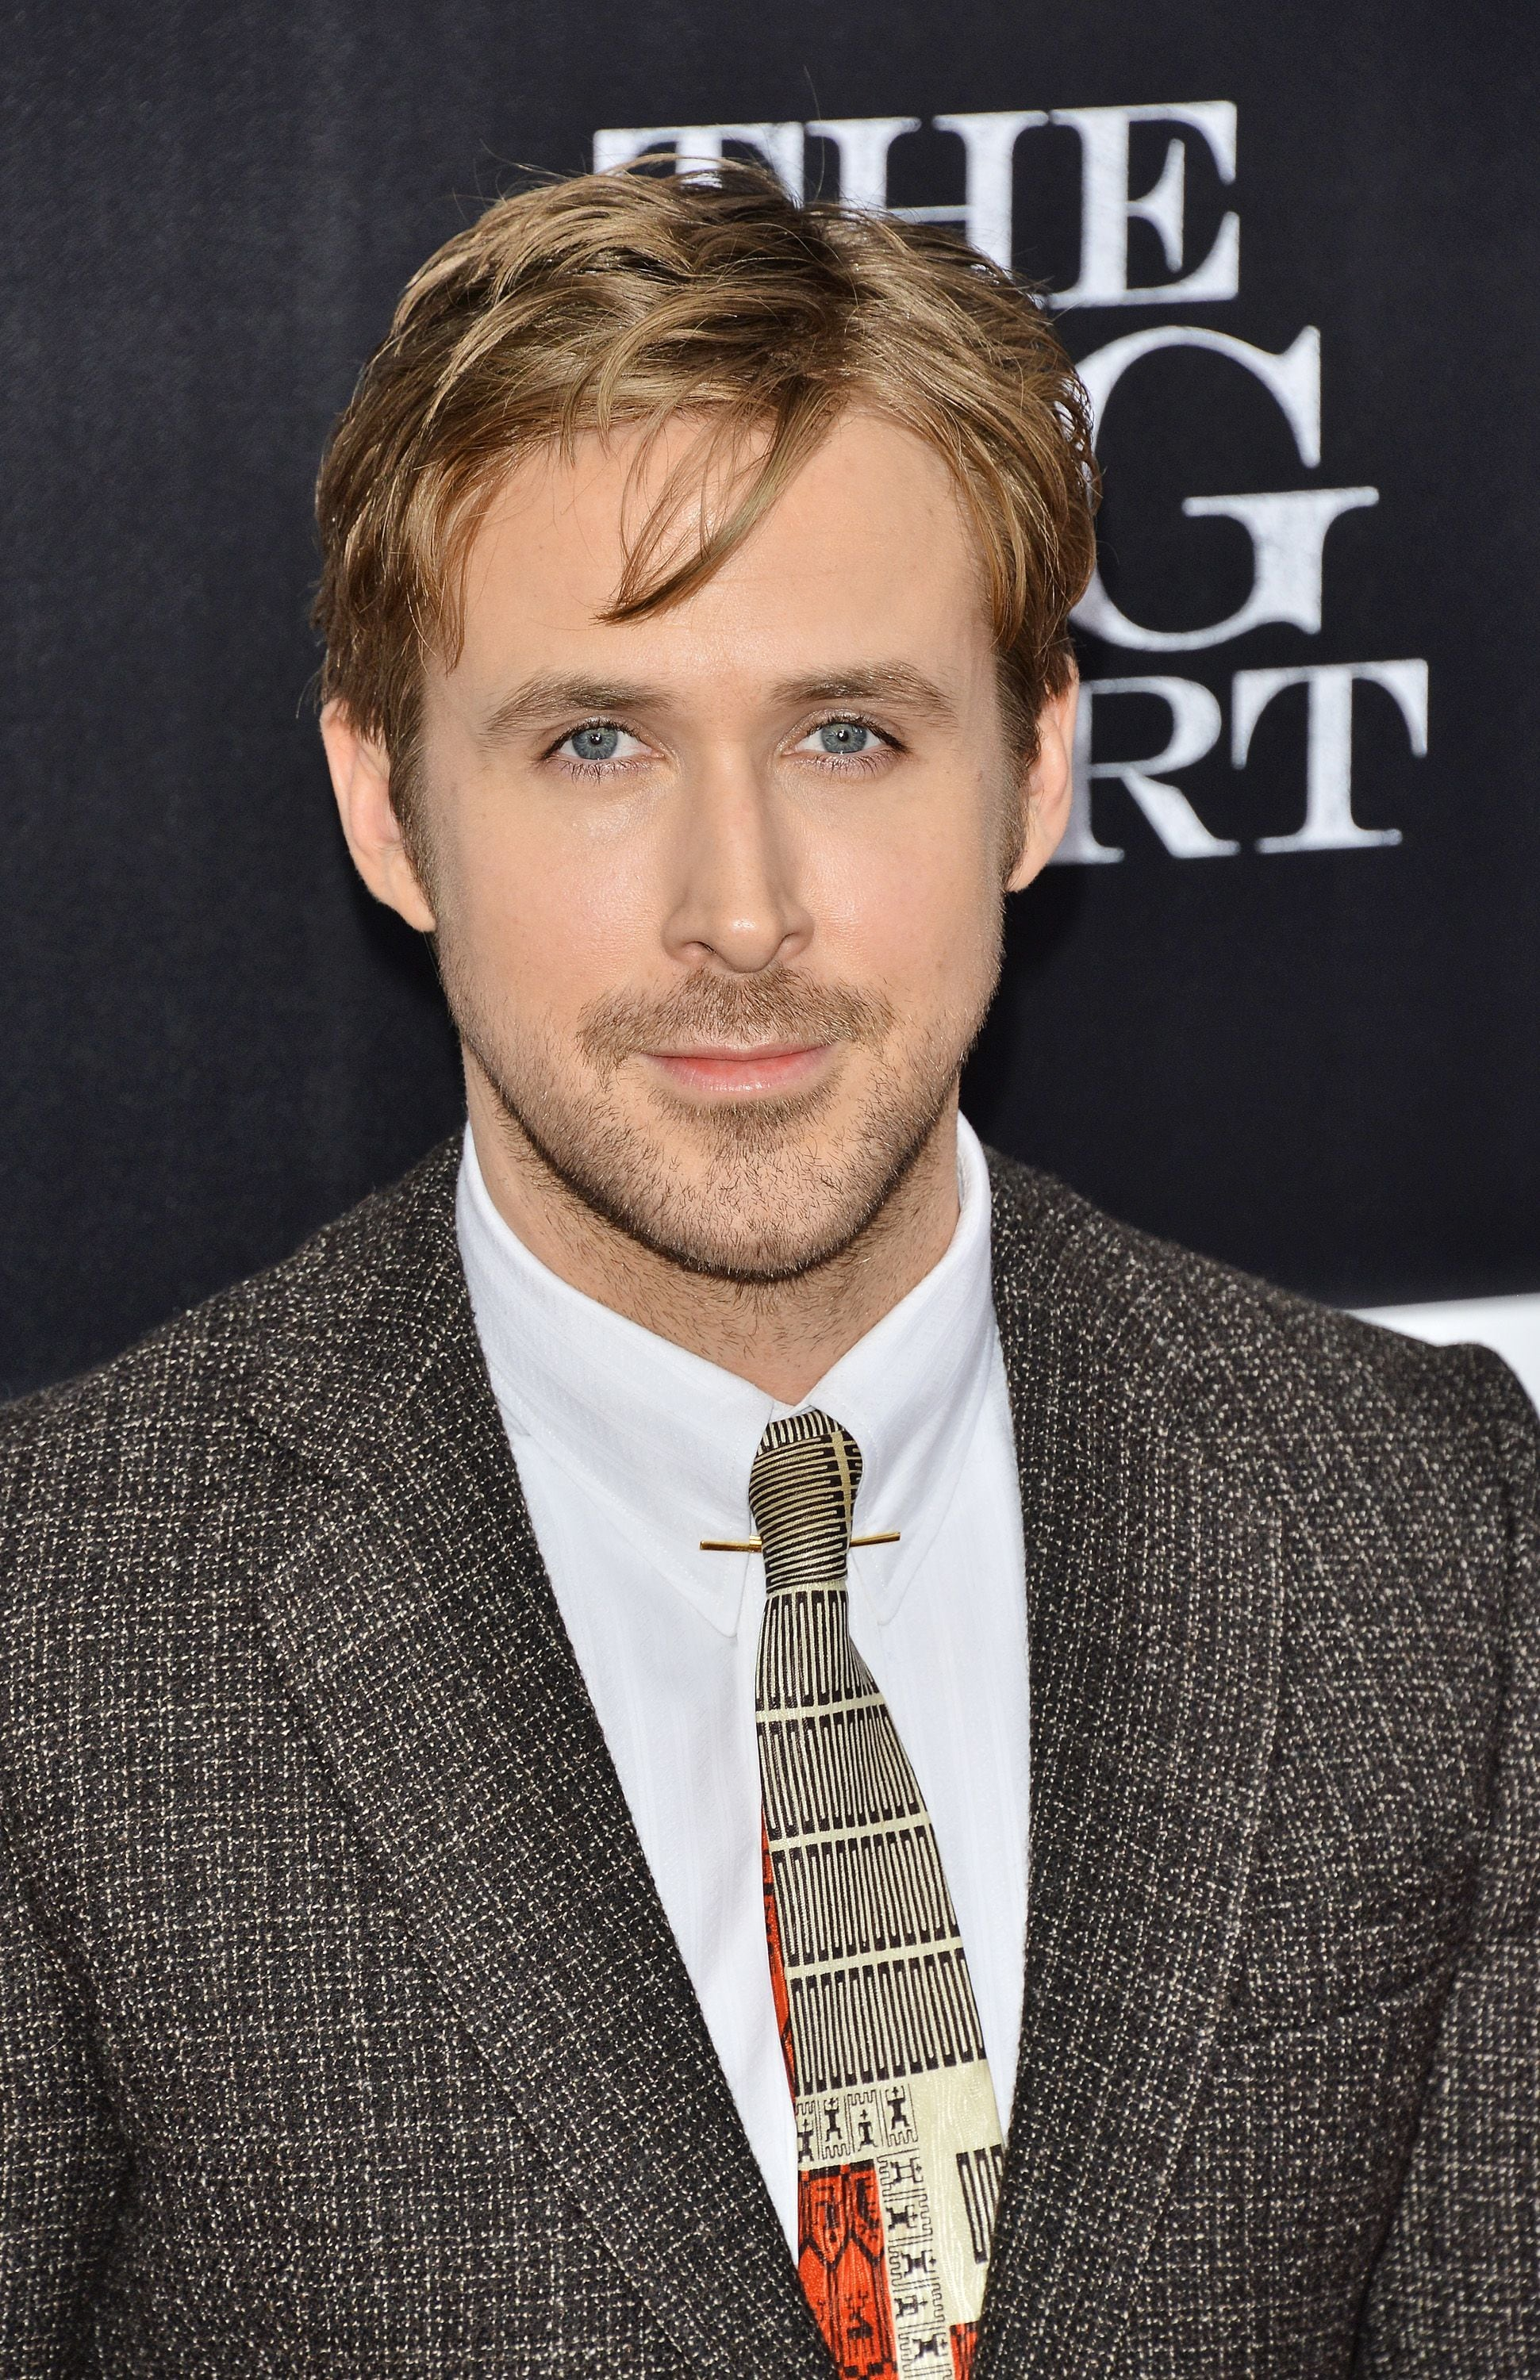 Ryan Gosling haircut: Ryan Gosling with a mid-length floppy textured haircut